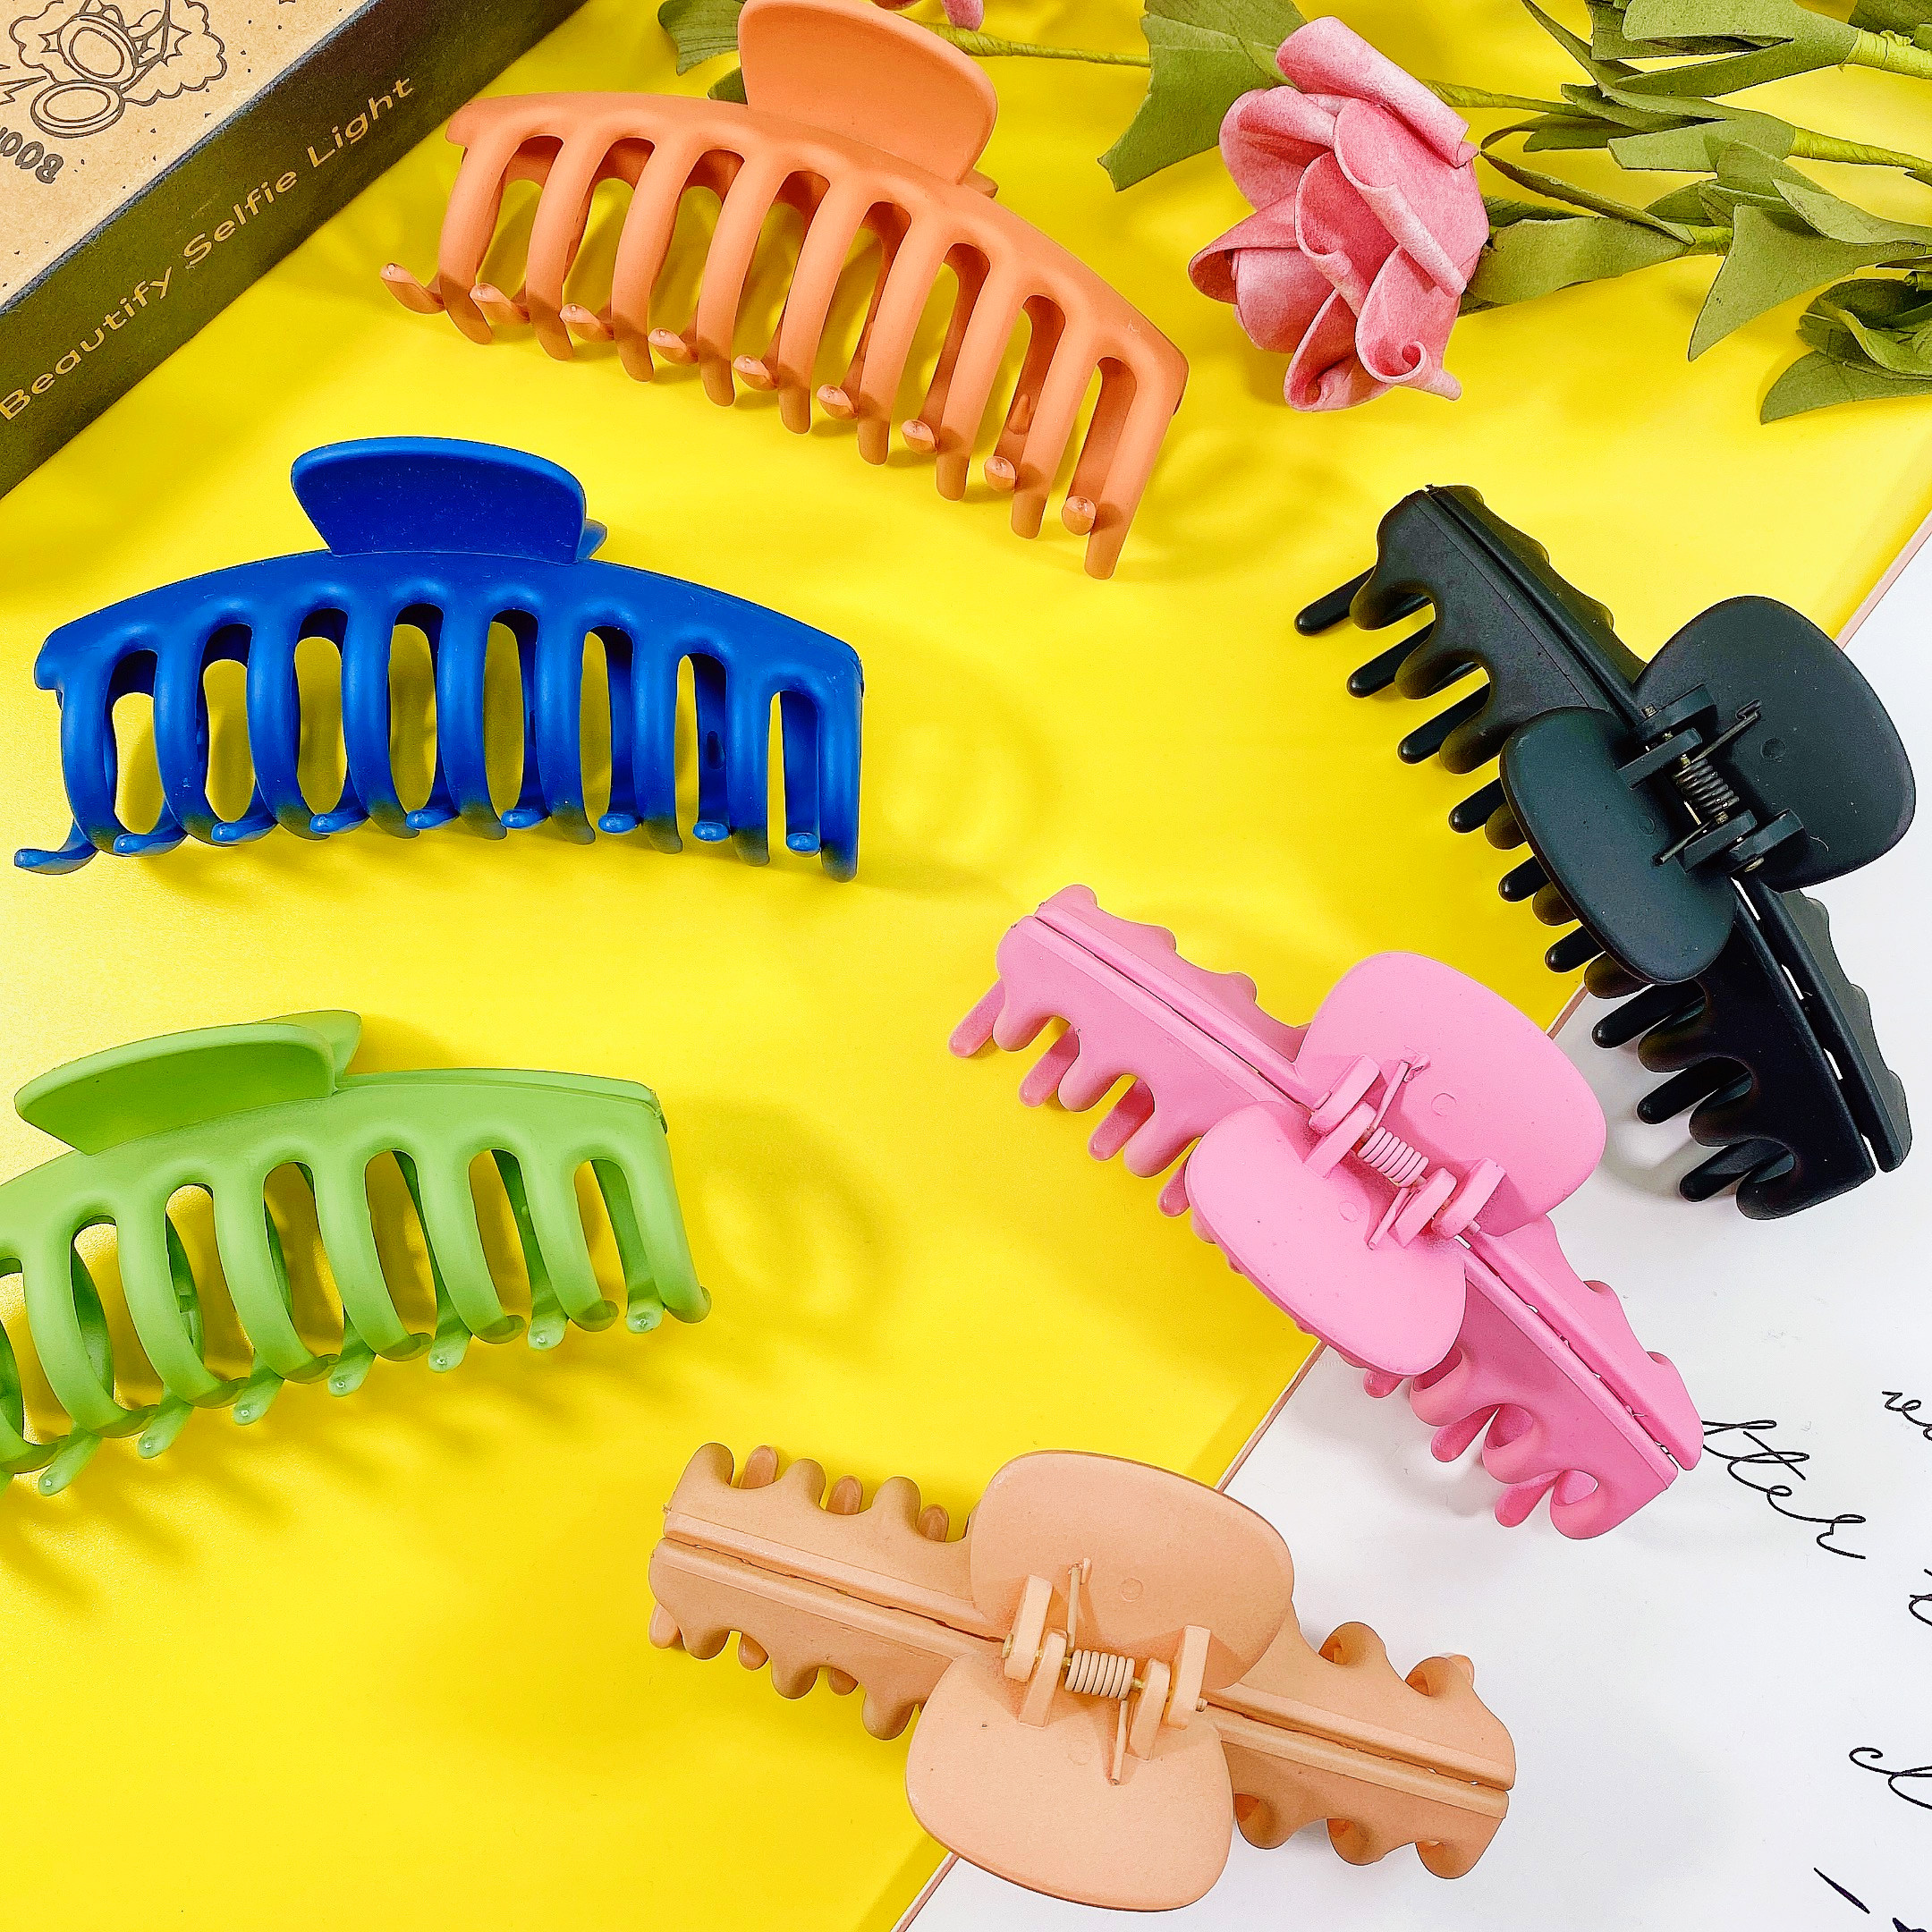 NEW Frosted Colorful Girls Hairpins Big Hair Claw Crab Plastic Hair Clips For Women Balck Pink Purple Barrettes Hair Accessories